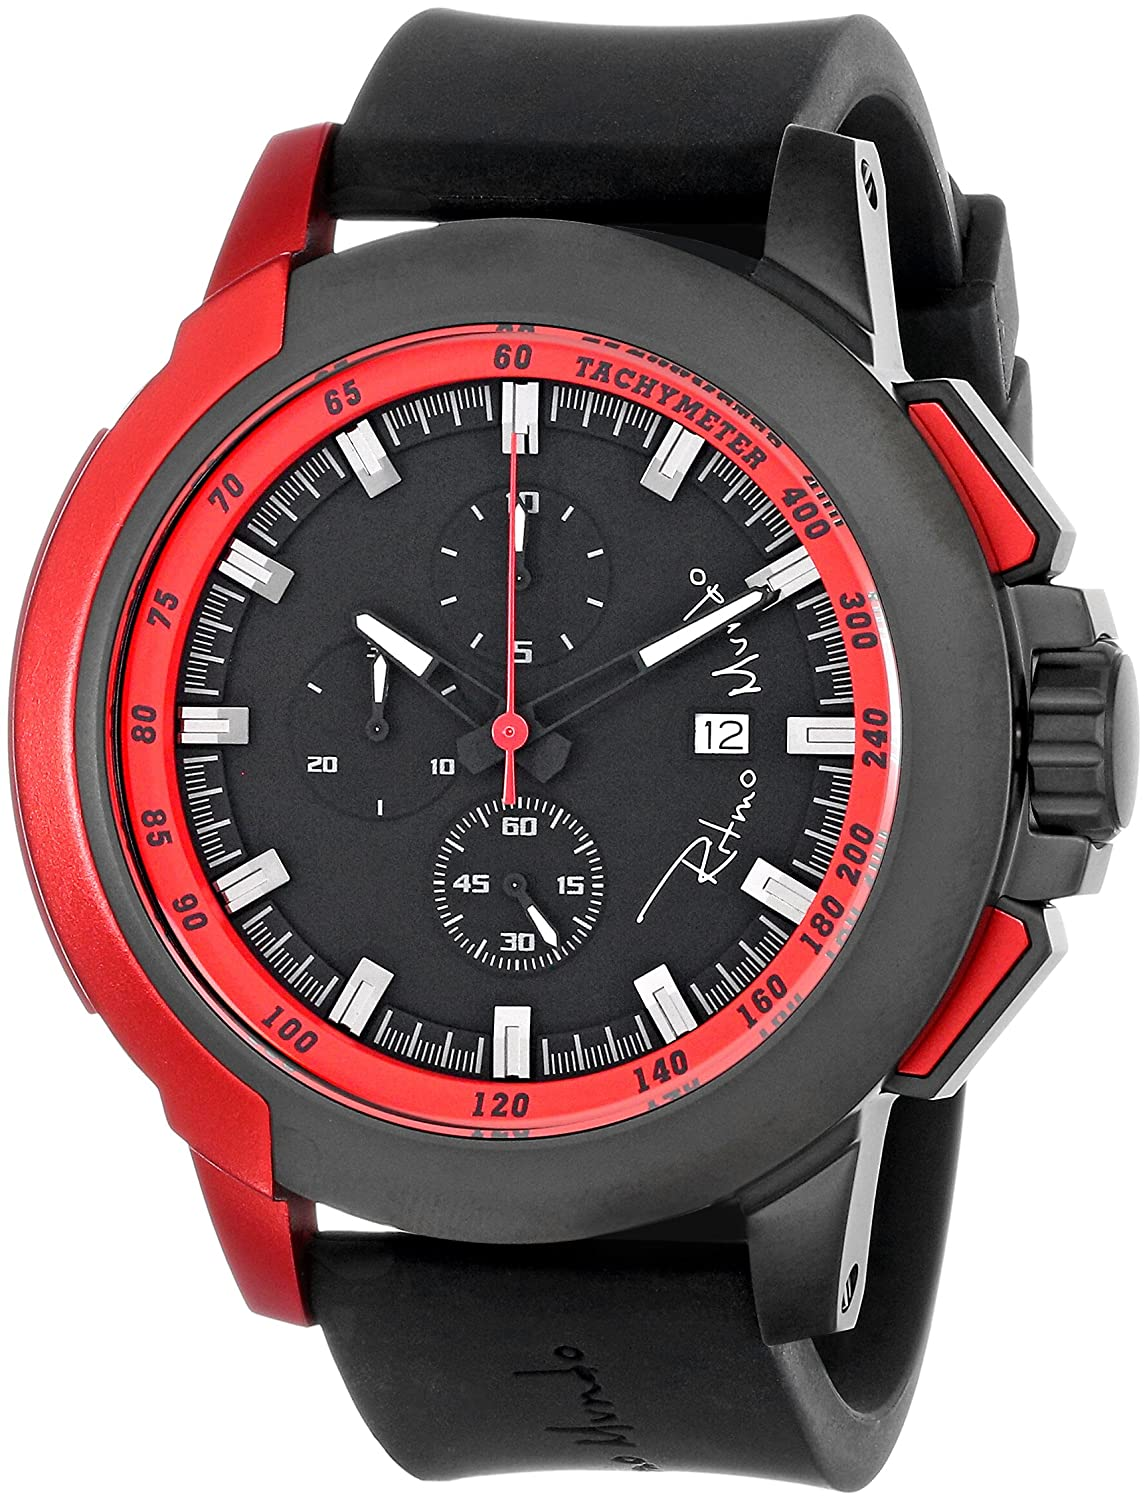 Ritmo Mundo Unisex 1101 4 Red Quantum Sport Quartz Chronograph Aluminum Accents Watch